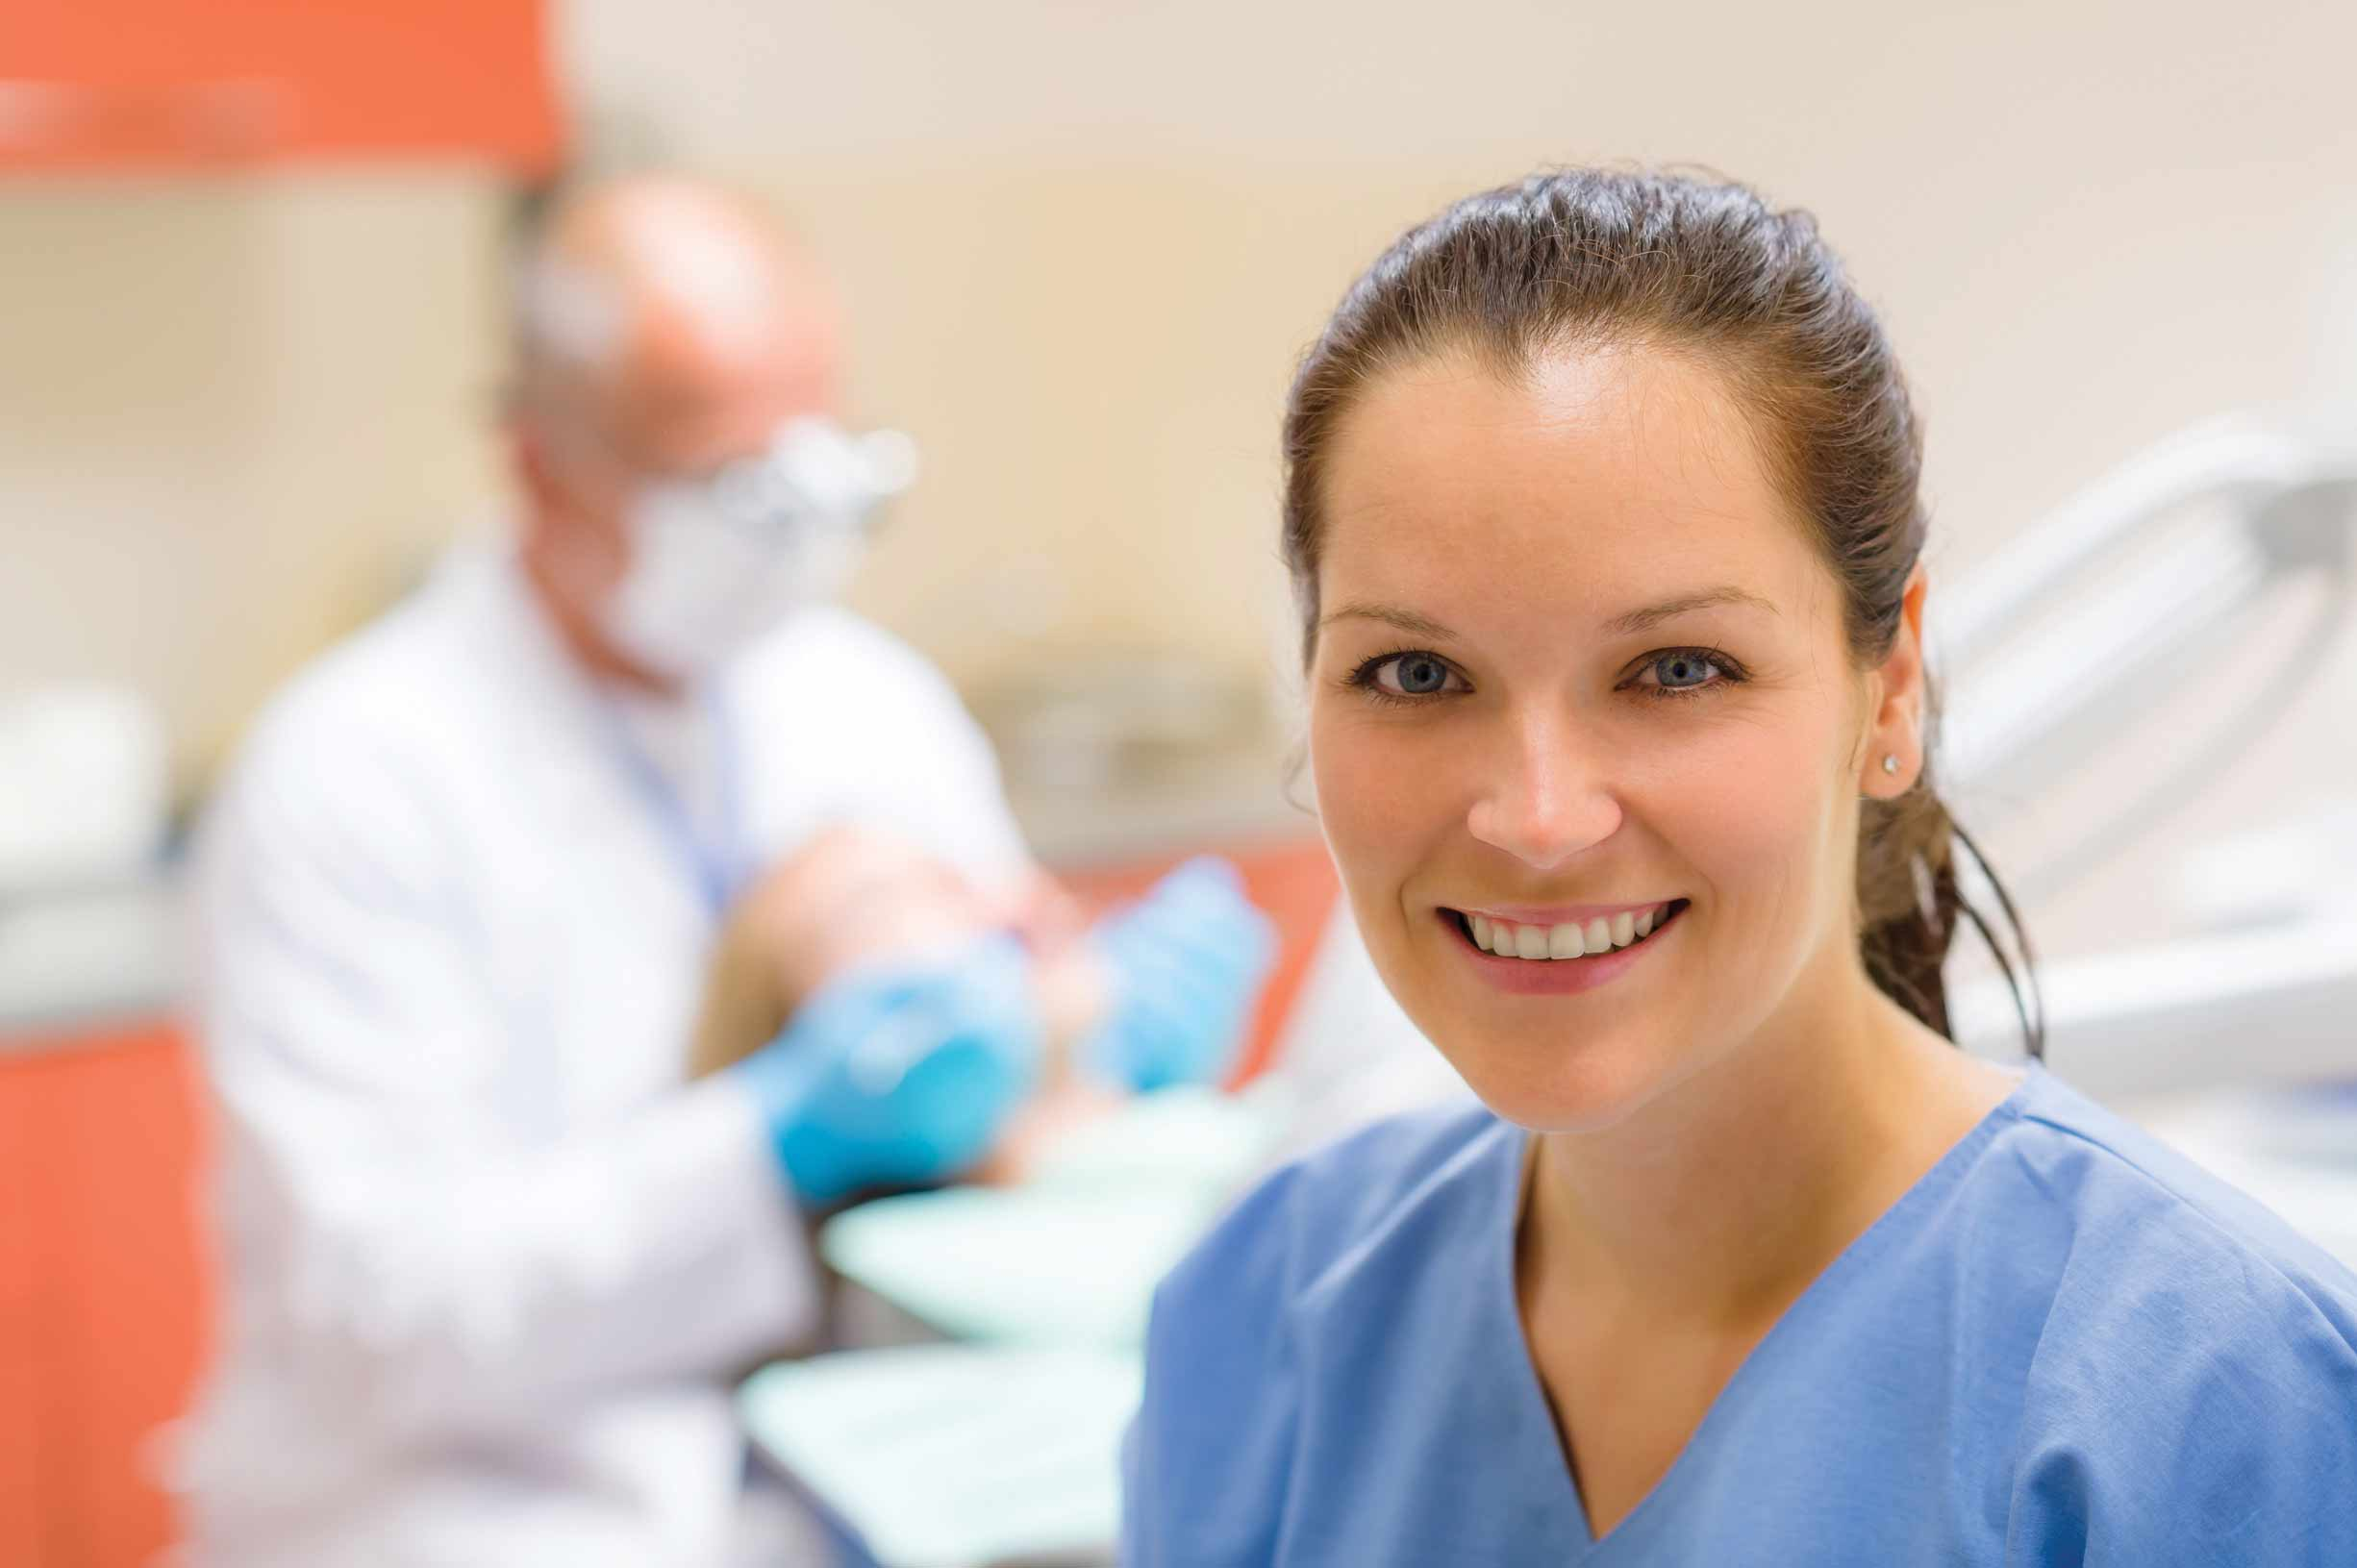 Dental Assisting School: IBMC College Fort Collins, Greeley, Longmont, CO and Cheyenne, WY